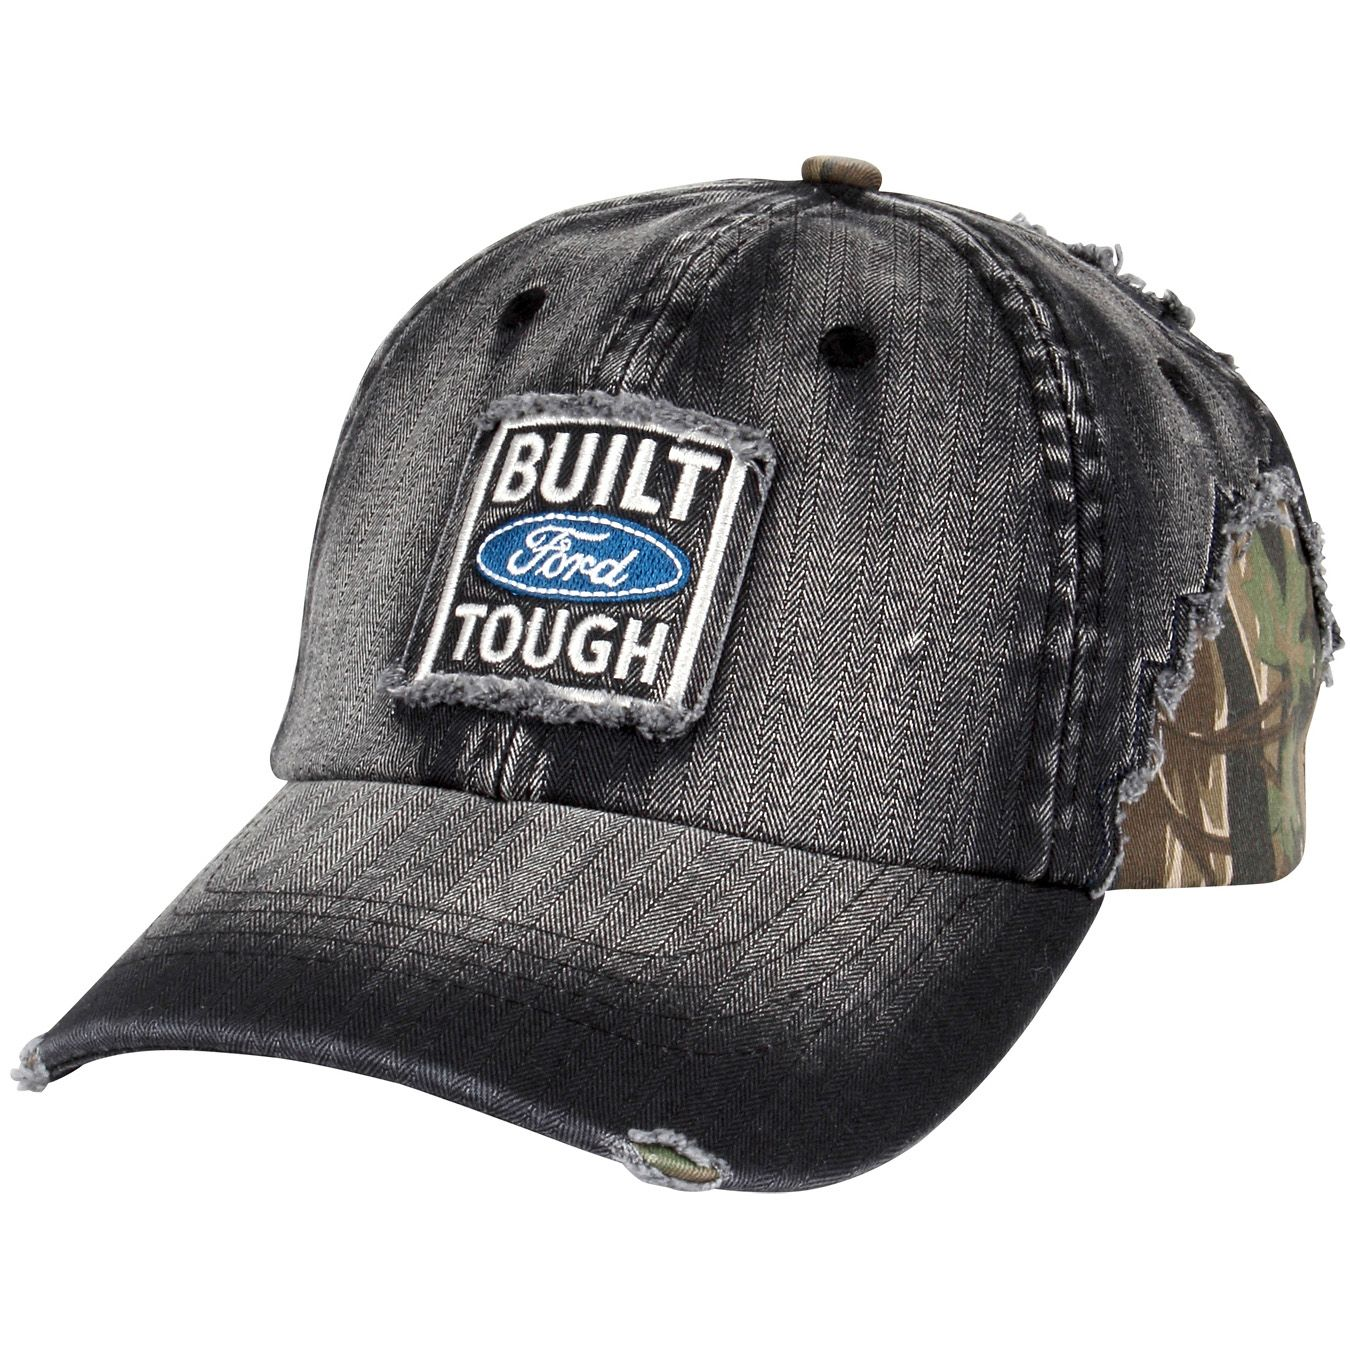 0eab8caf779 Distressed visor and panels. Sewn eyelets and adjustable Velcro® closure.  Built Ford Tough patch center front.